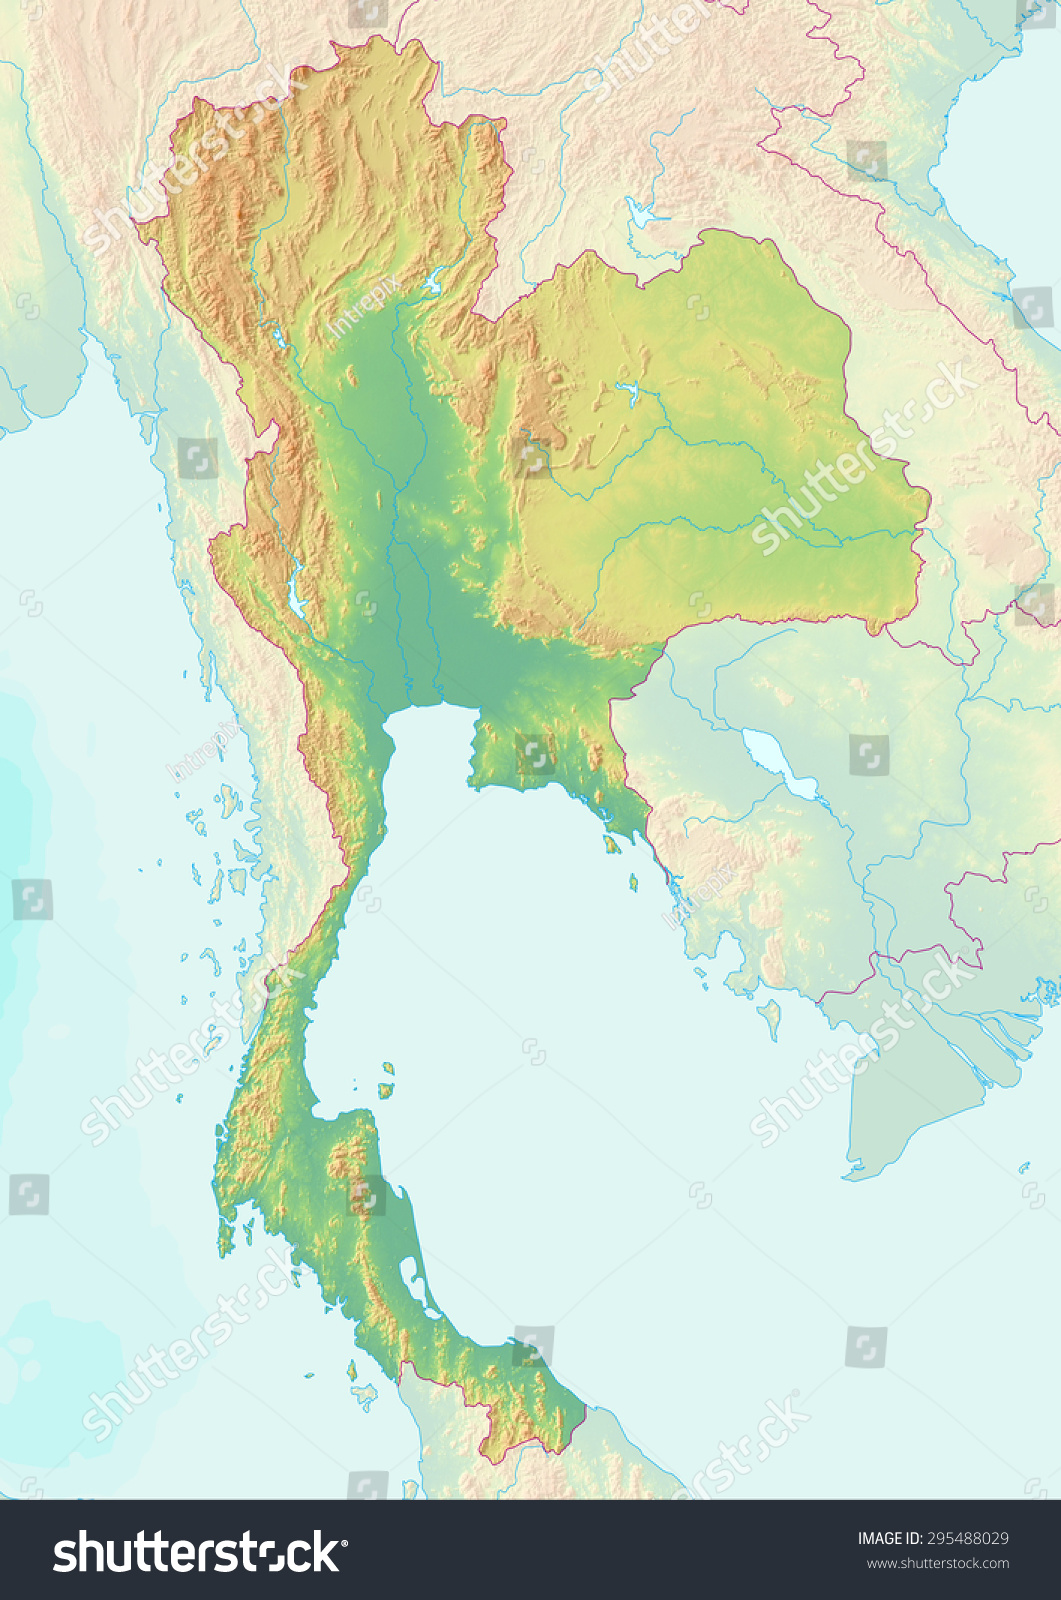 Topographic Map Of Thailand With Shaded Relief And ...